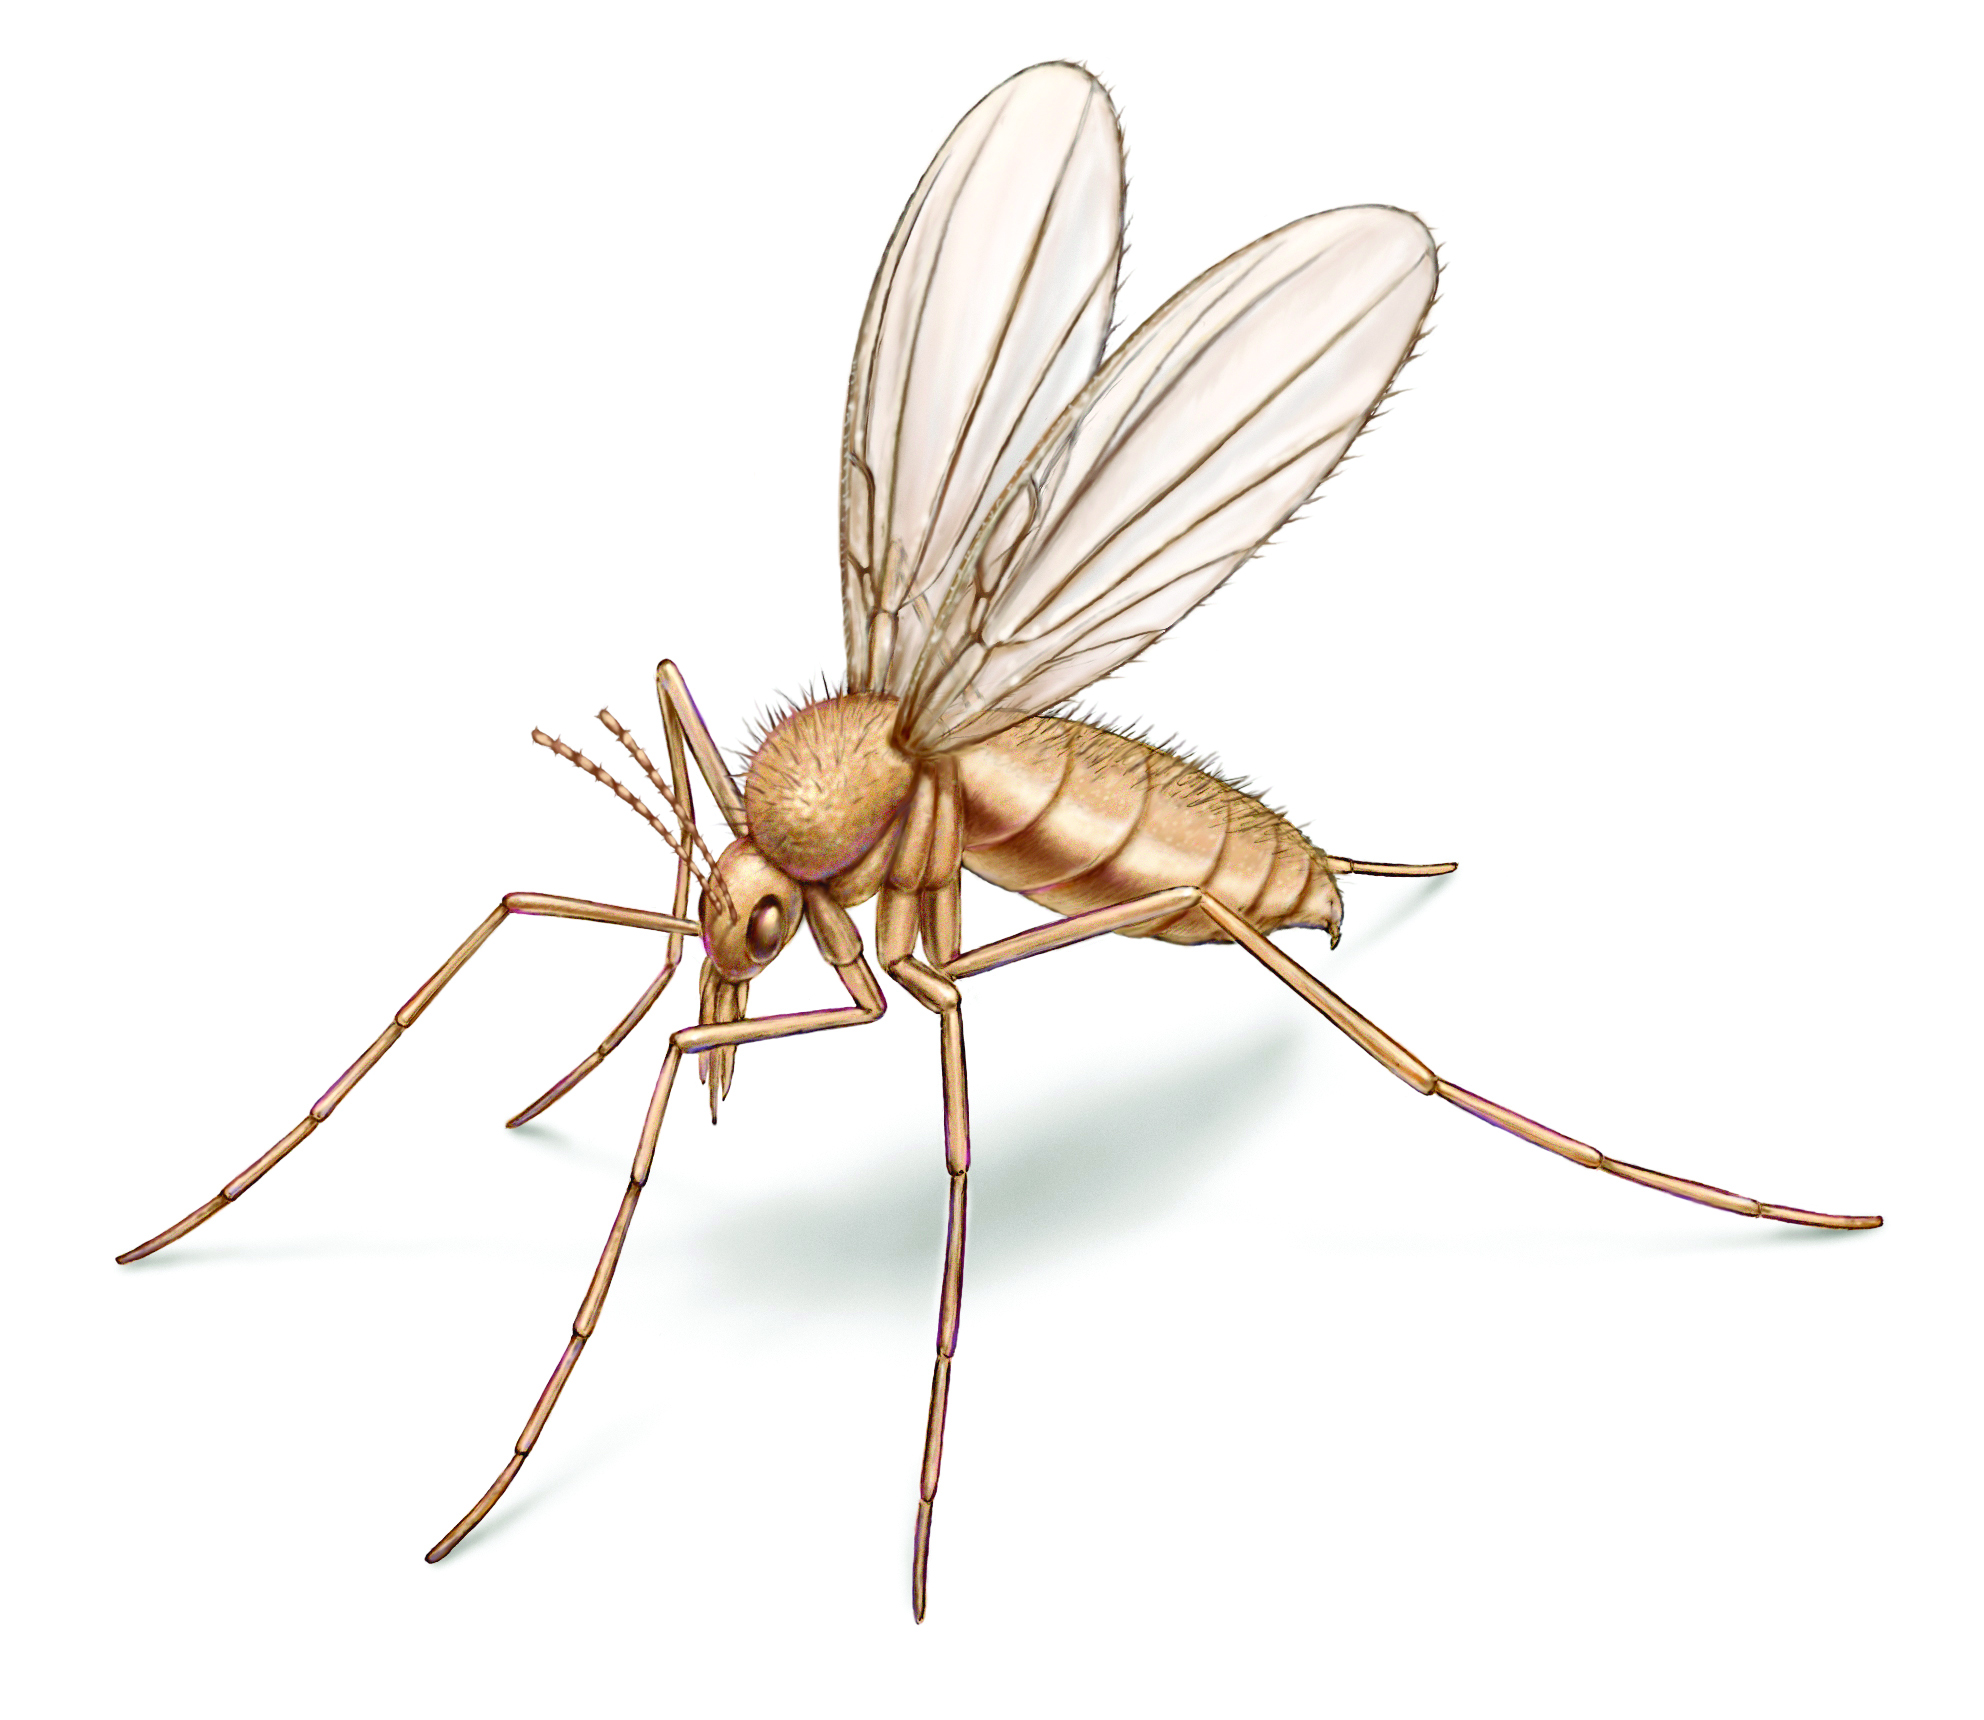 Sand Fly Illustration on white background.